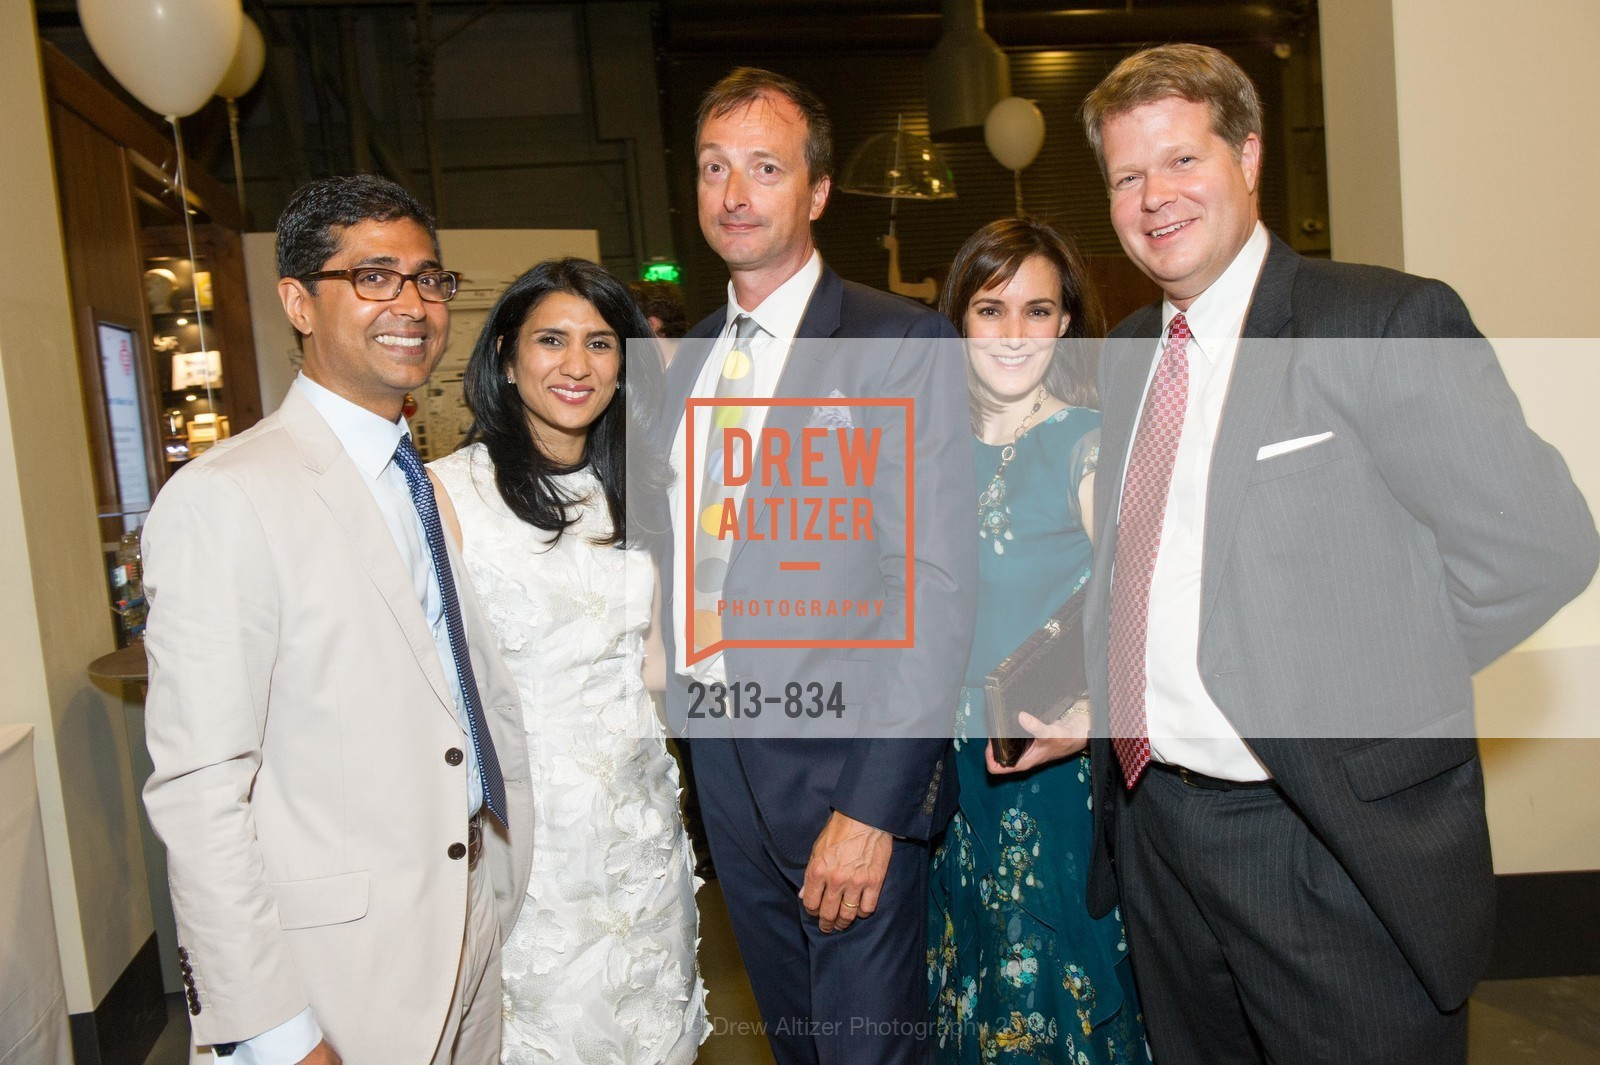 Ravin Agrawal, Alka Agrawal, Nicholas Baker, Kirby Burke, Jeff Burke, Exploratorium Spring Gala, Exploratorium, 140515, May 15th, 2014,Drew Altizer, Drew Altizer Photography, full-service event agency, private events, San Francisco photographer, photographer California